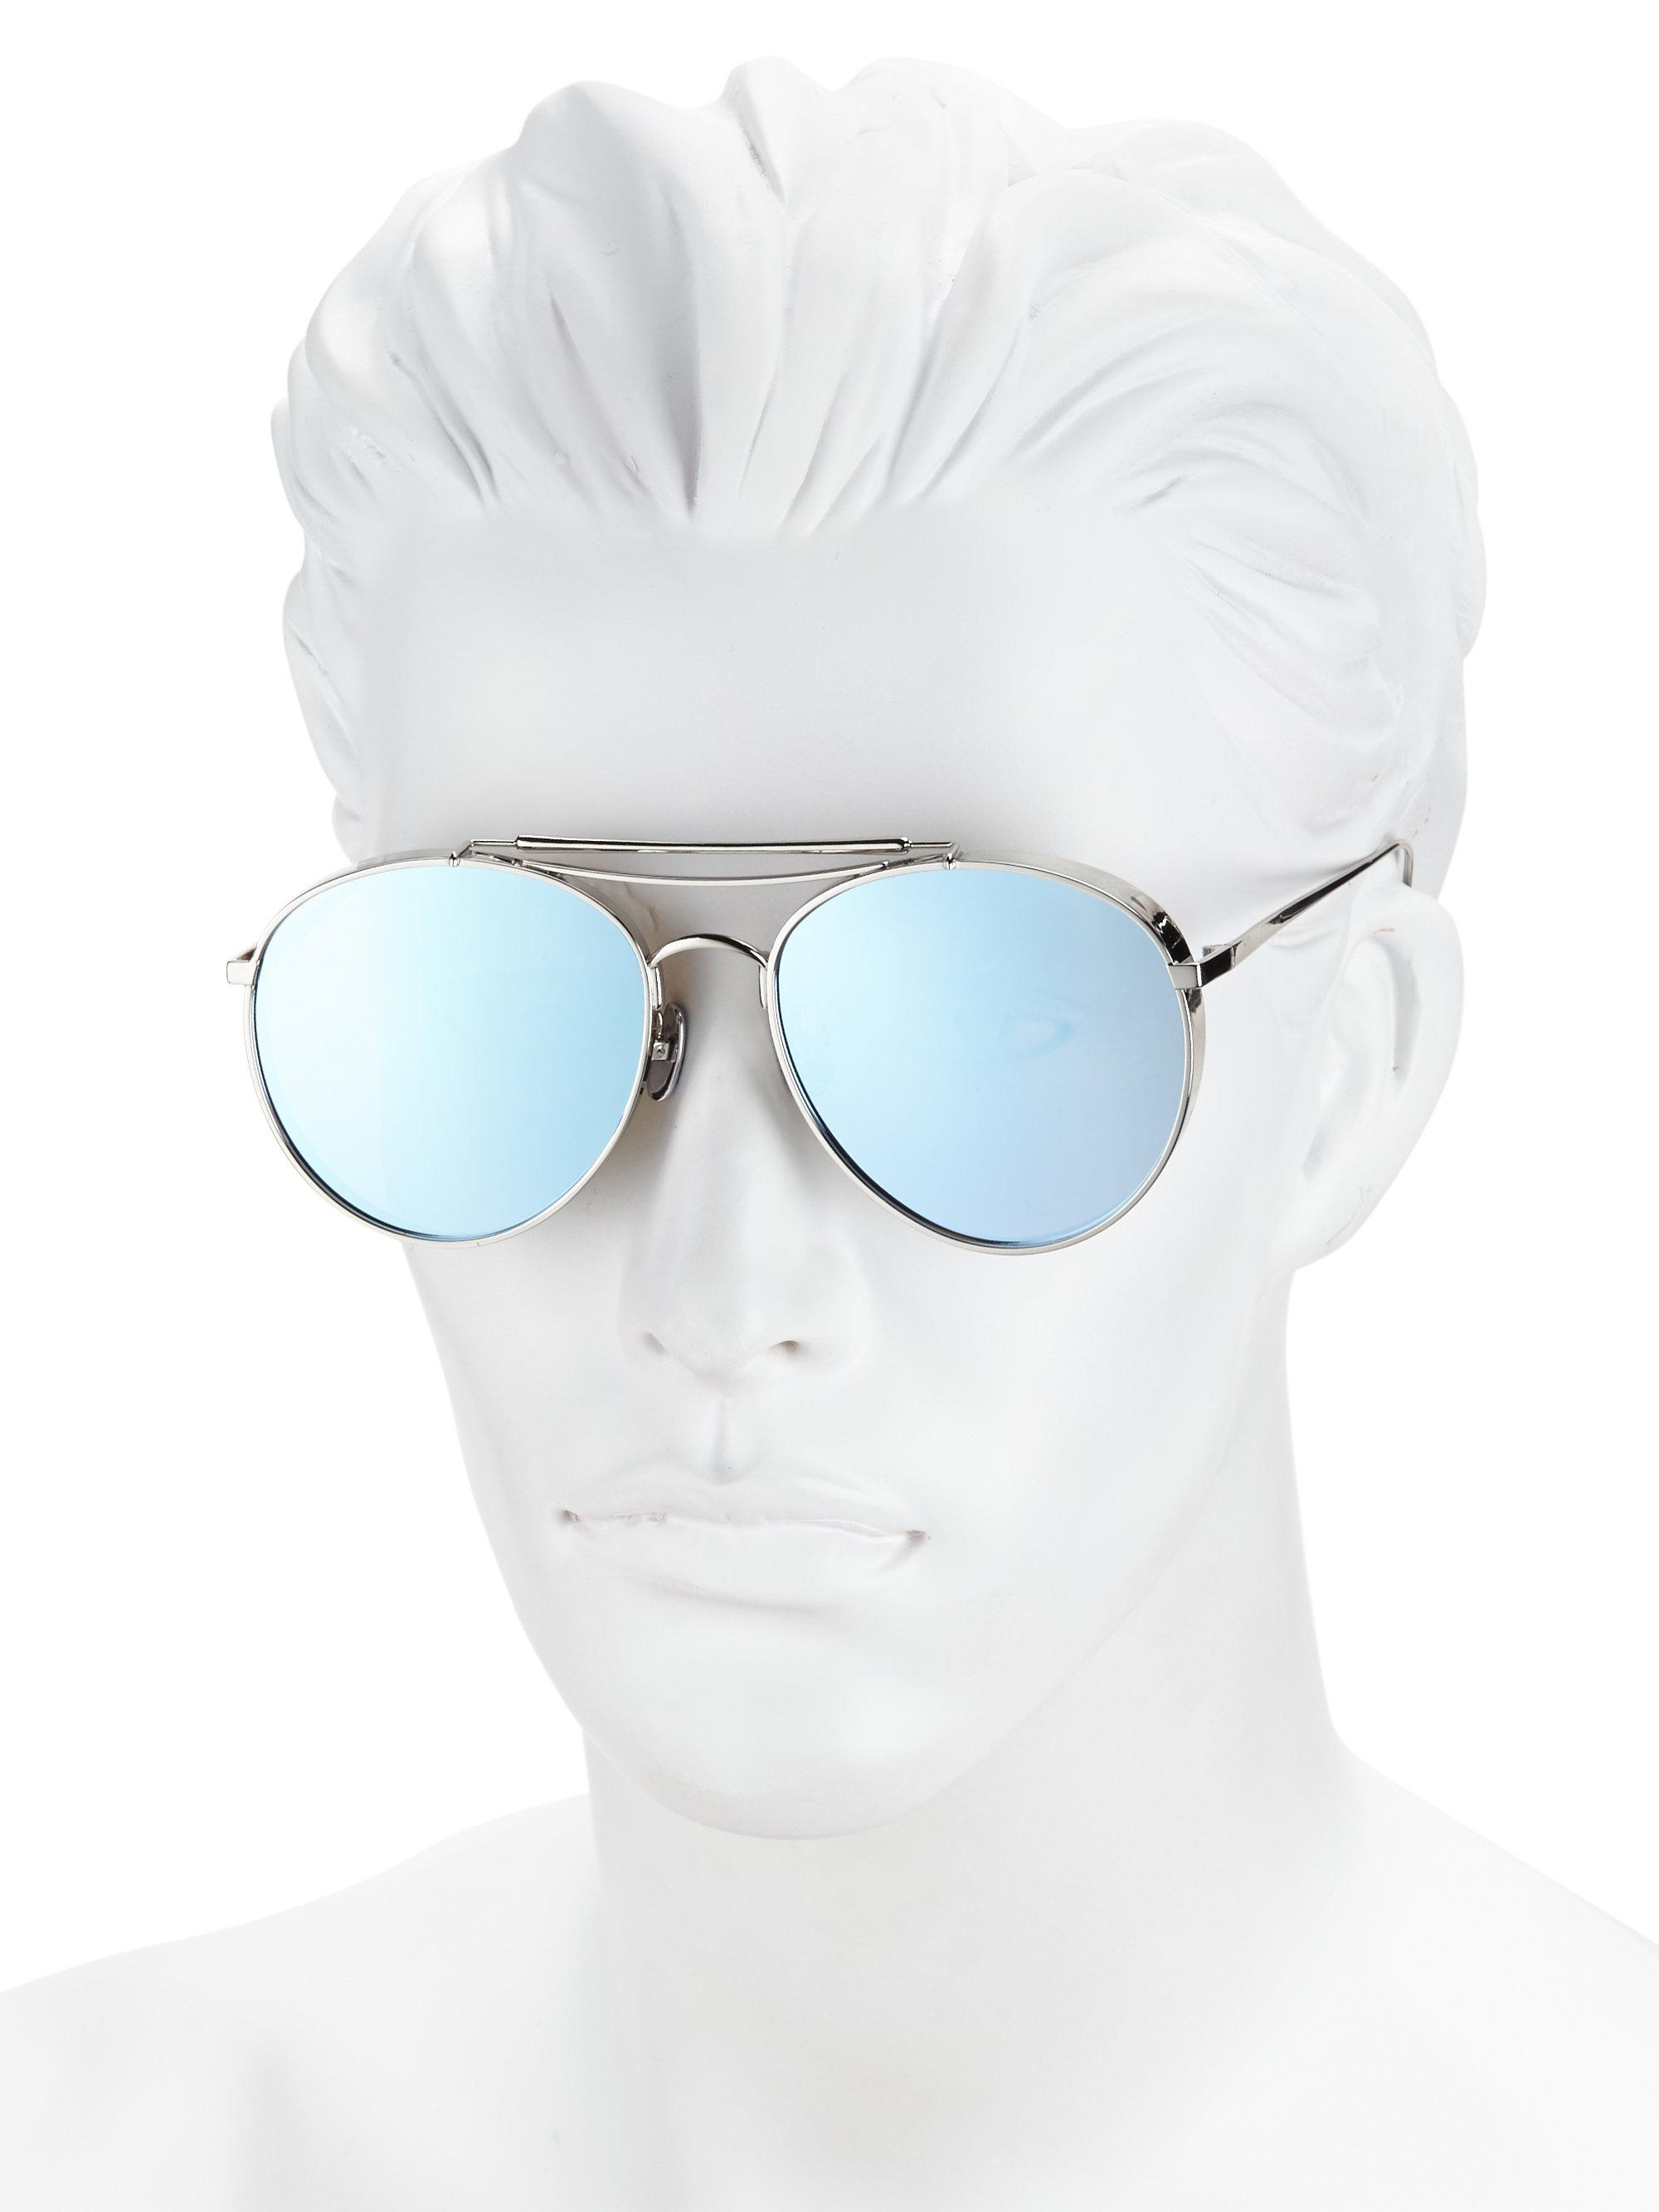 5b53b1c5a2a Lyst - Gentle Monster Big Bully Aviator Sunglasses in Blue for Men